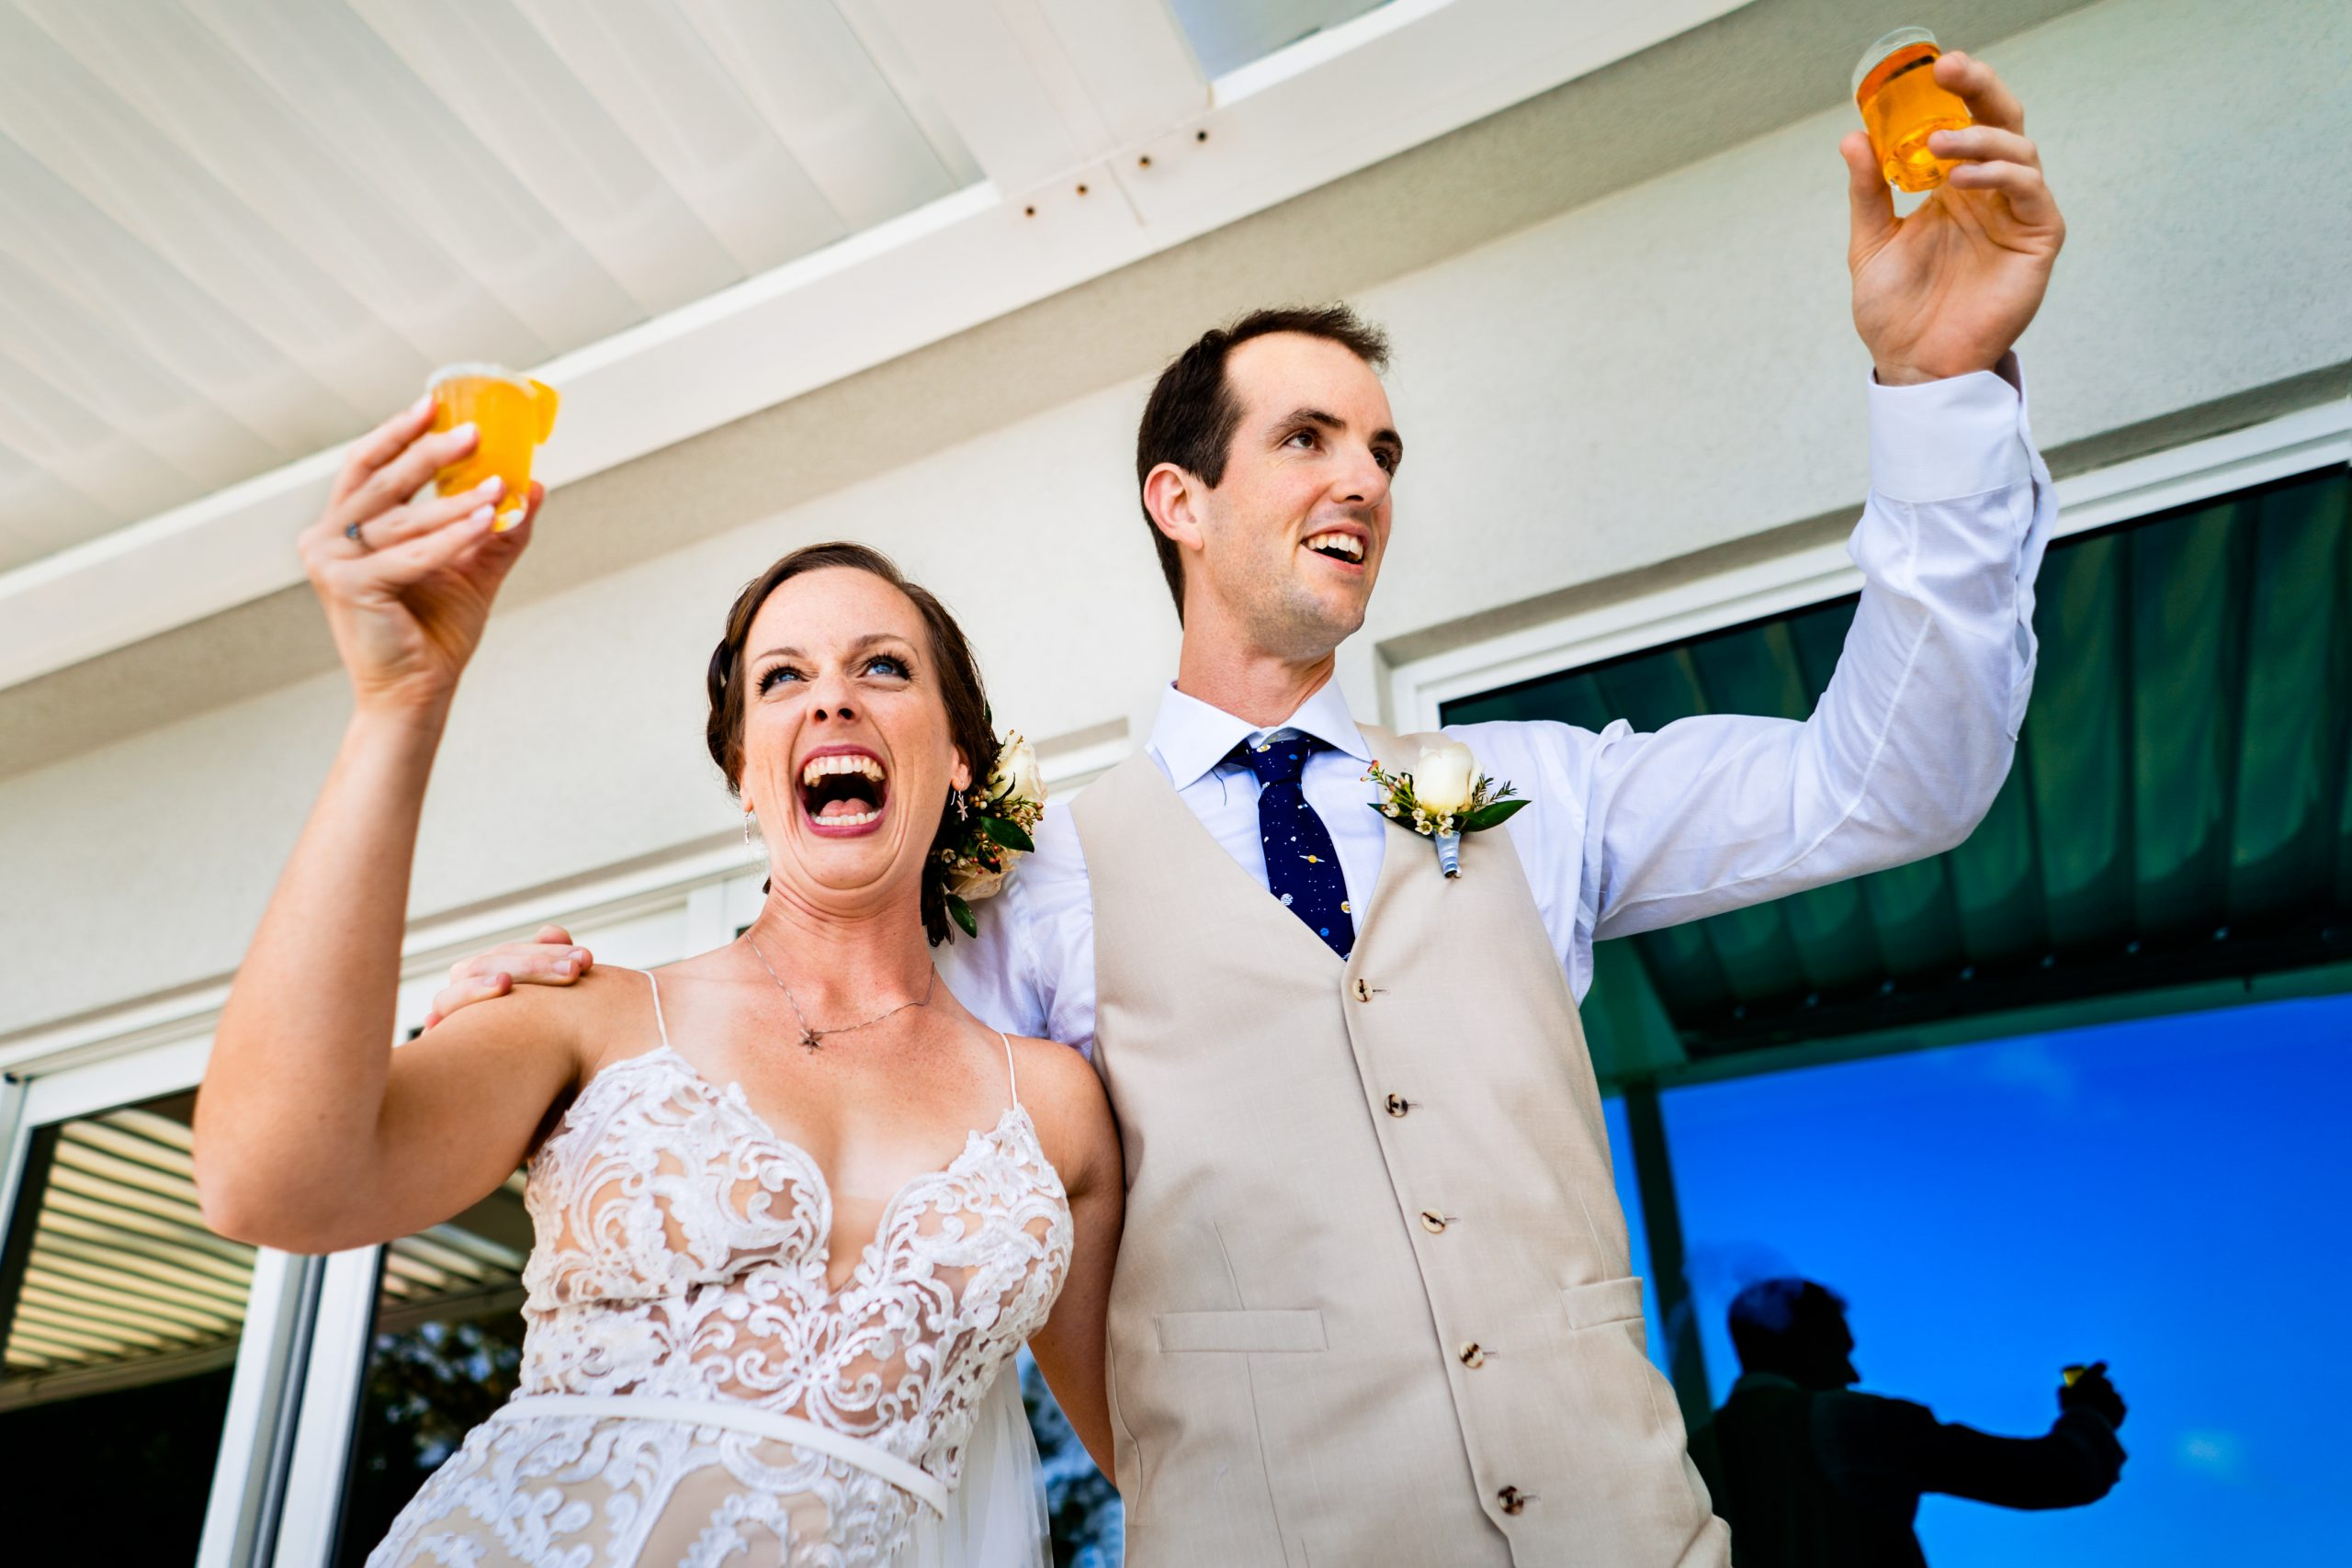 Newlyweds share a toast with their guests